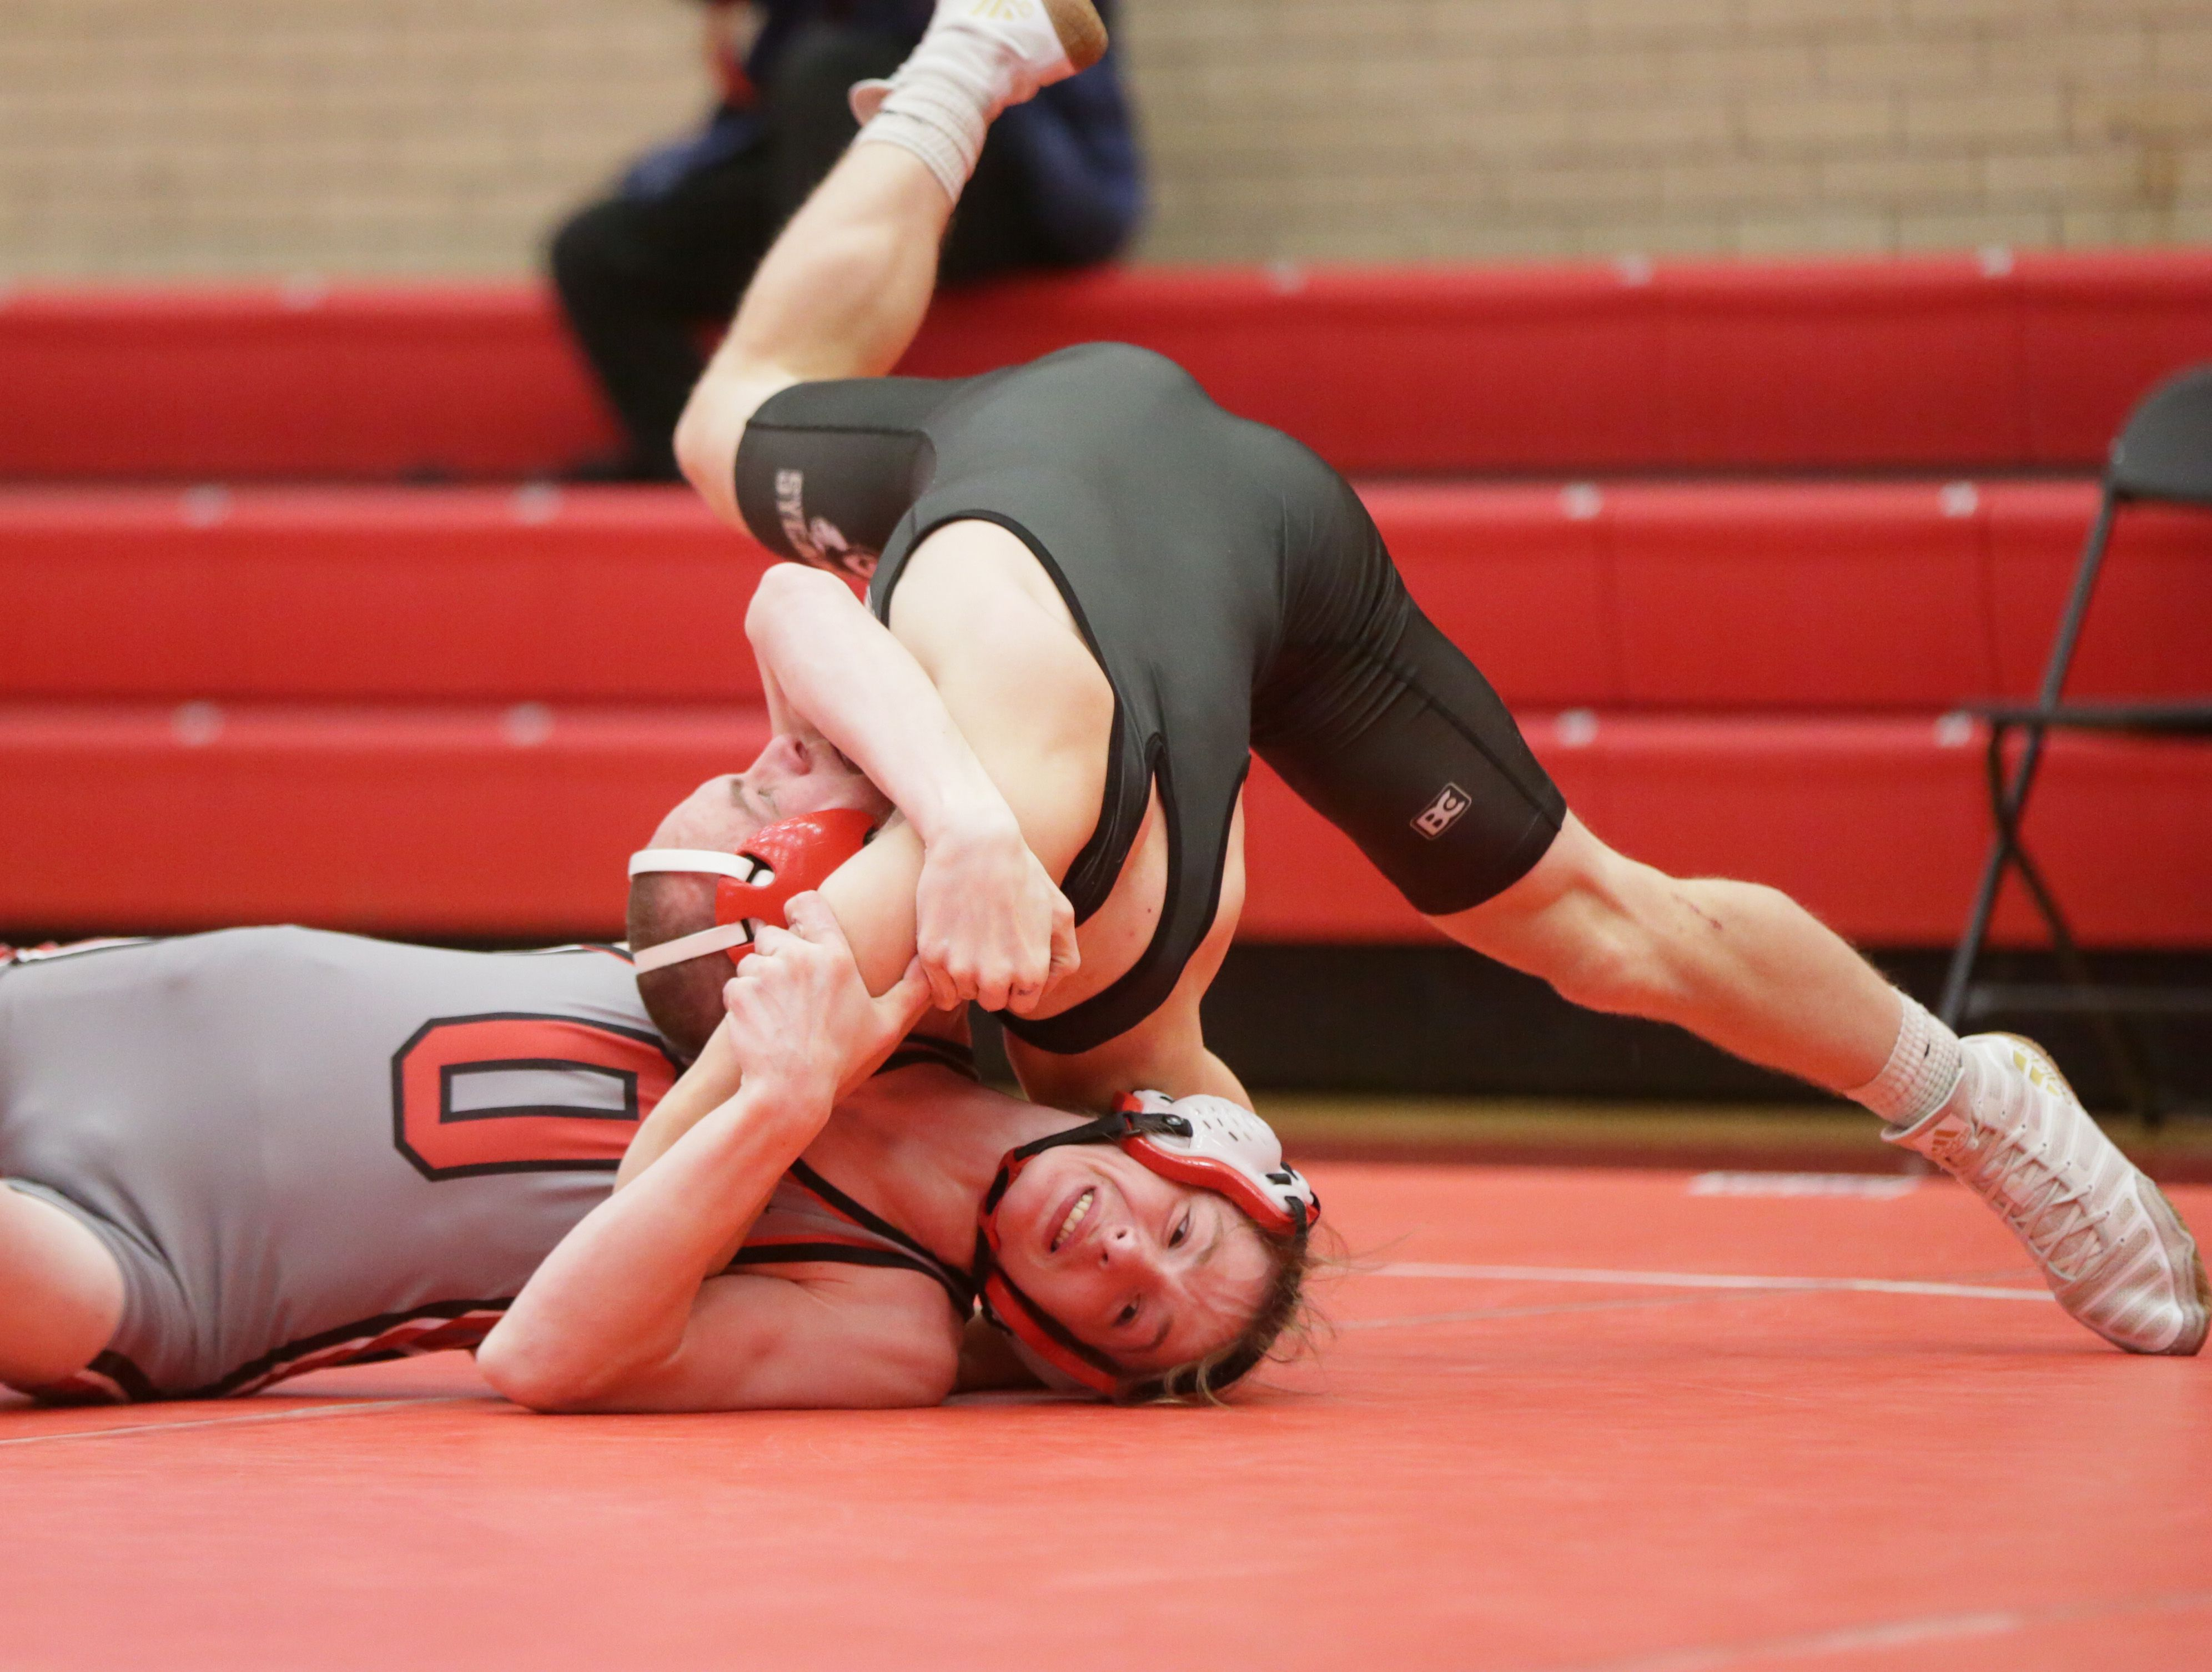 Ottawa's Tristan Simmons flips Sycamore's Samuel Sprinkle during a wrestling meet at Ottawa on Saturday May 1, 2021.